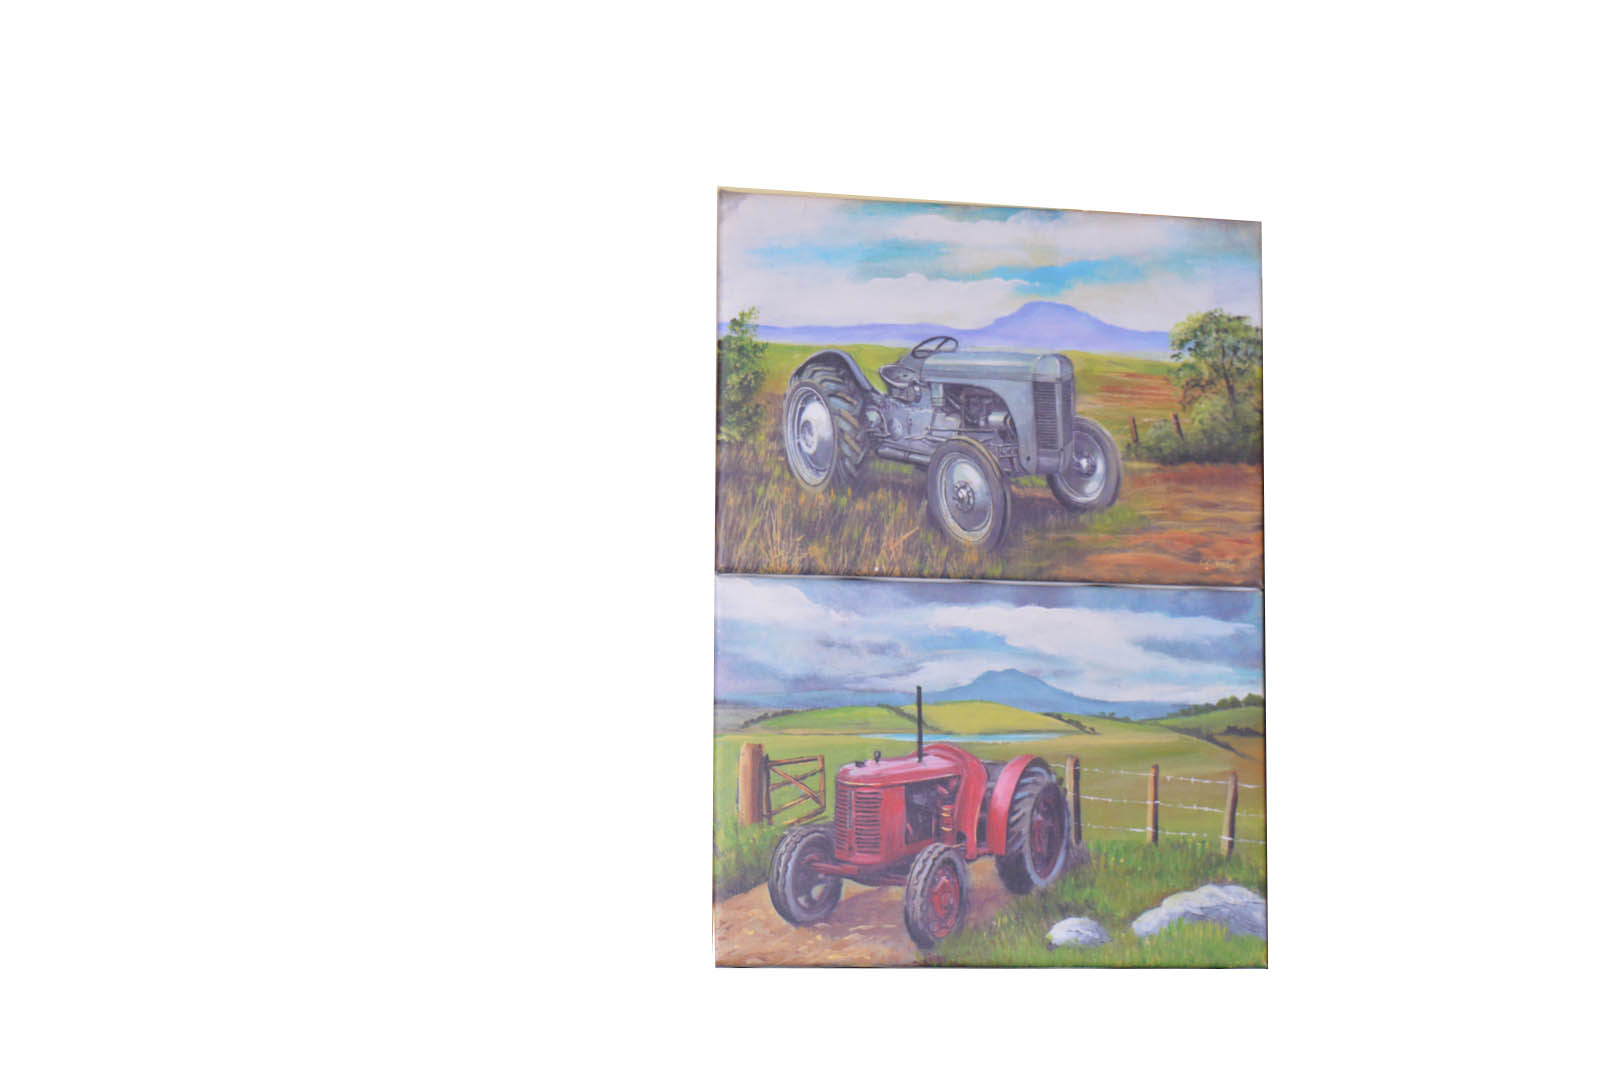 Lot 573 - A Pair of Unframed Pictures 'Old Tractors' - C. Geddis